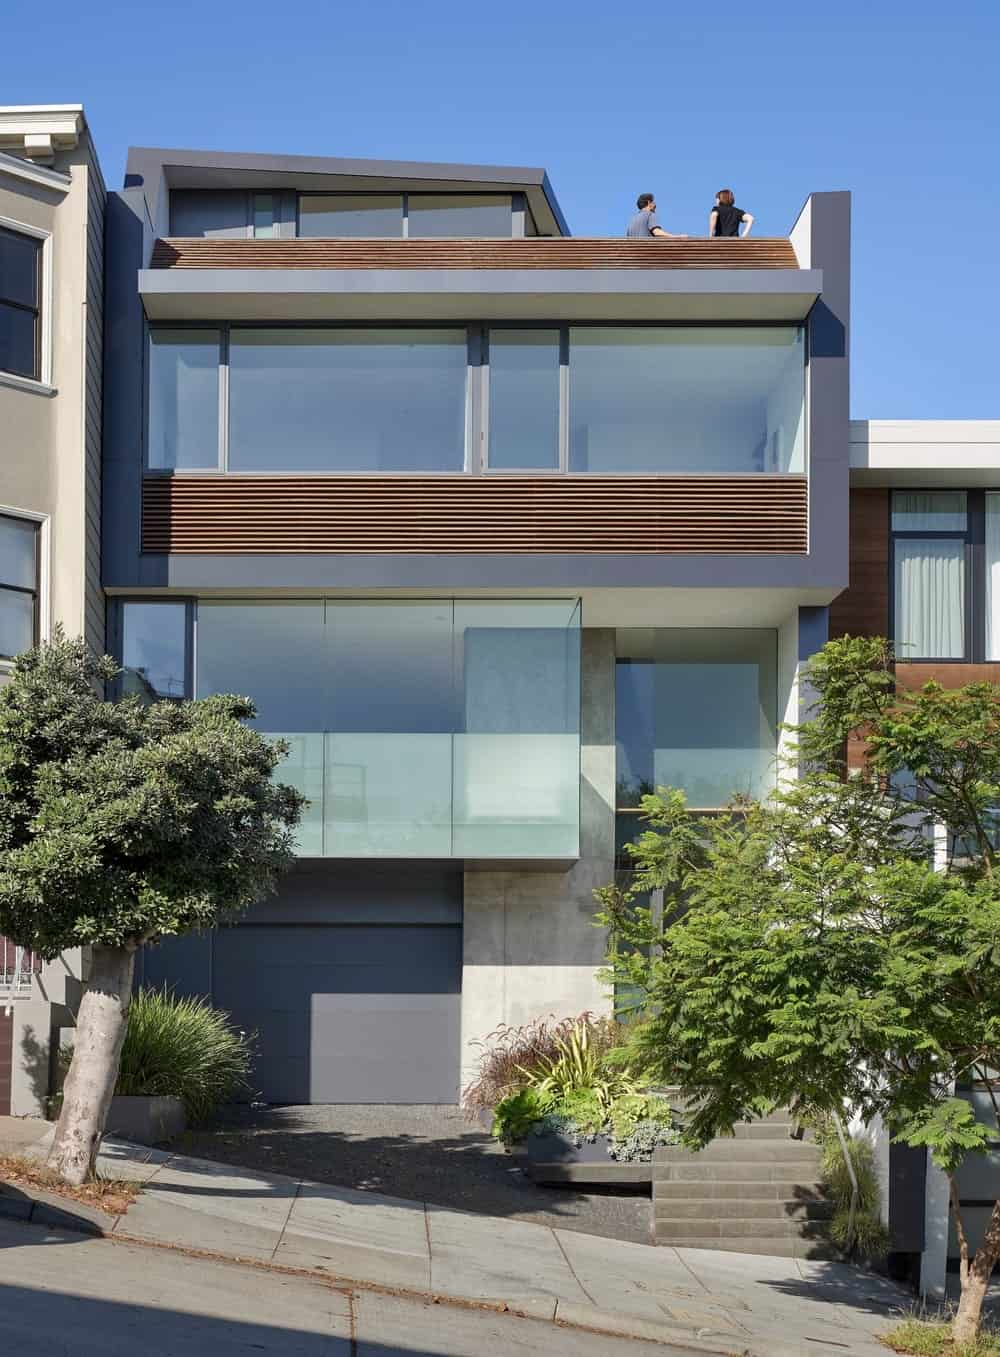 Facade of the House on Hillside designed by Terry & Terry Architecture.